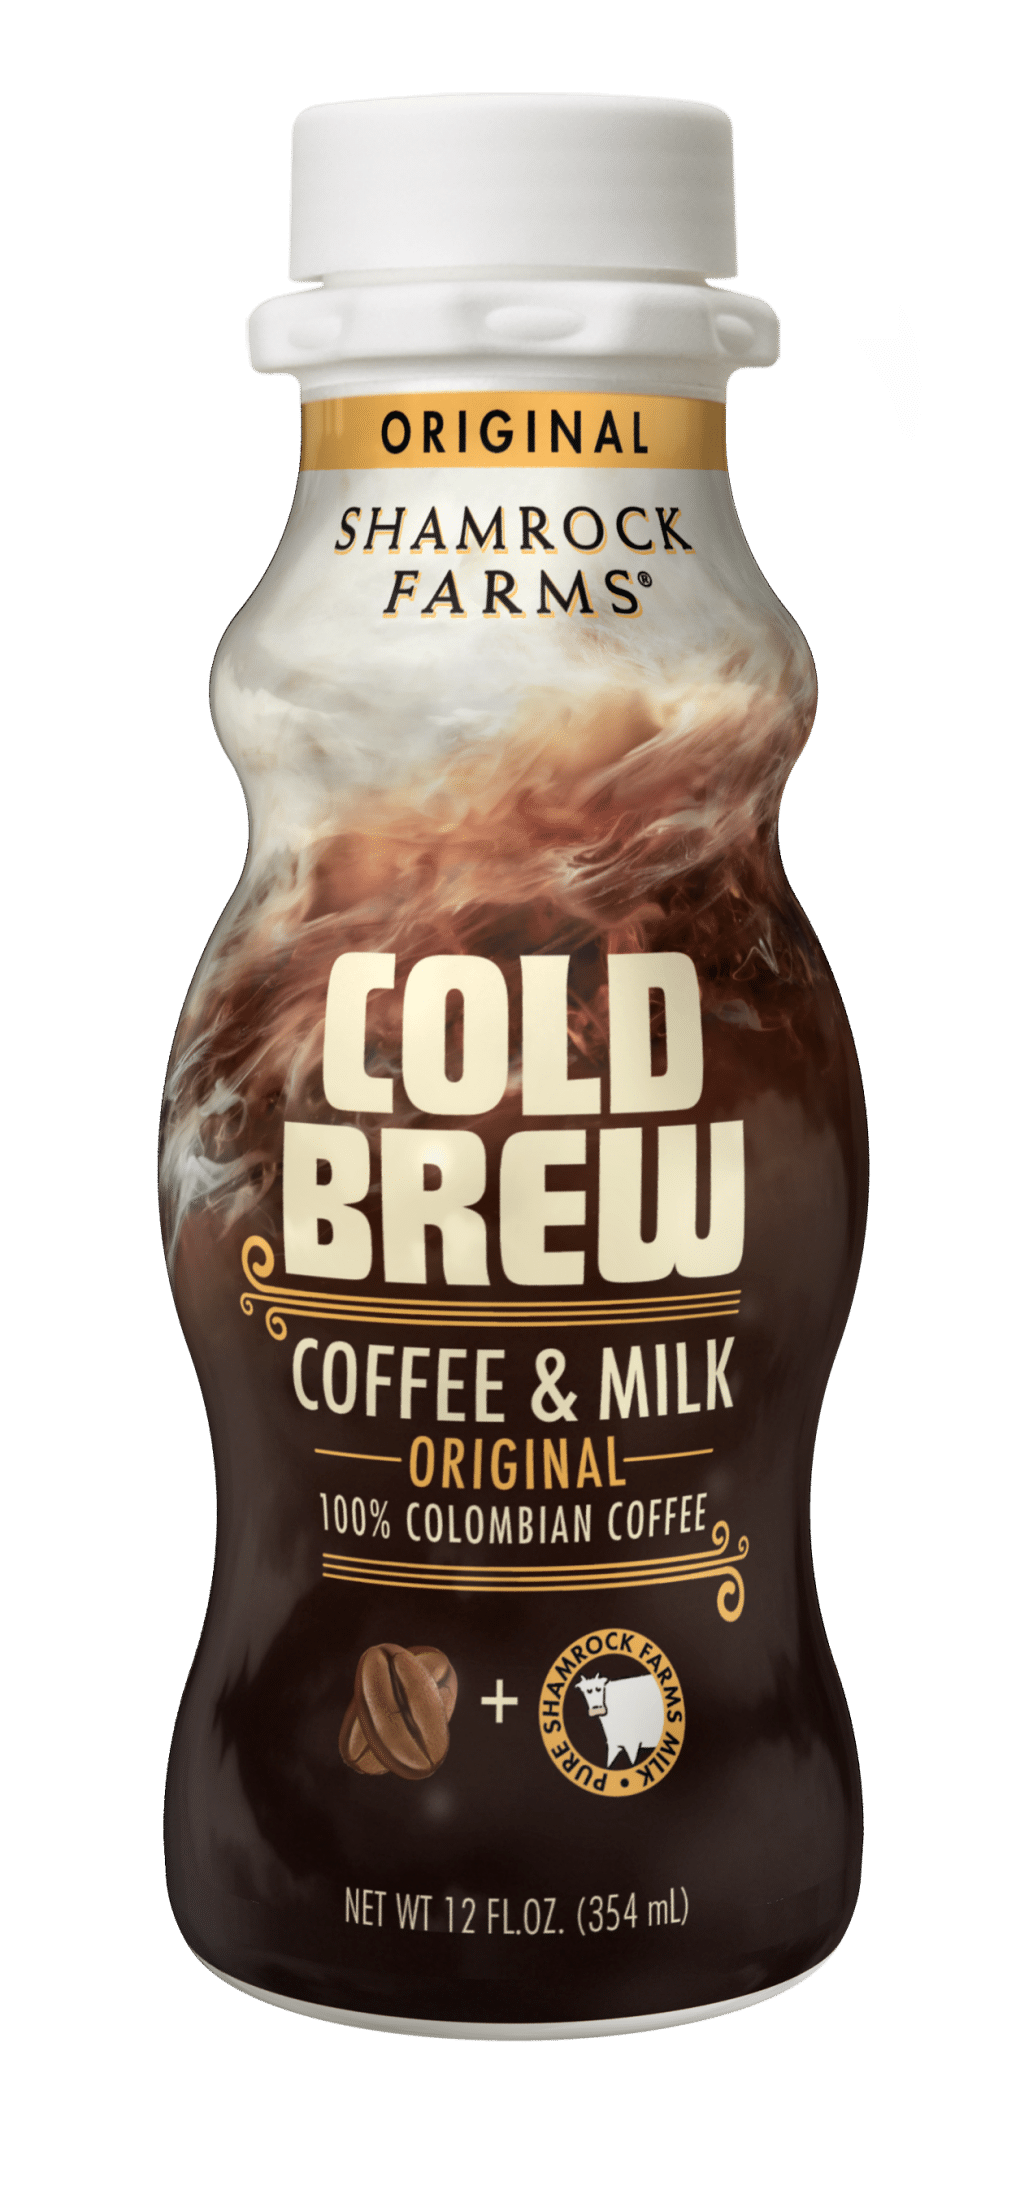 Shamrock Farms Debuts New Cold Brew Coffee And Milk Line